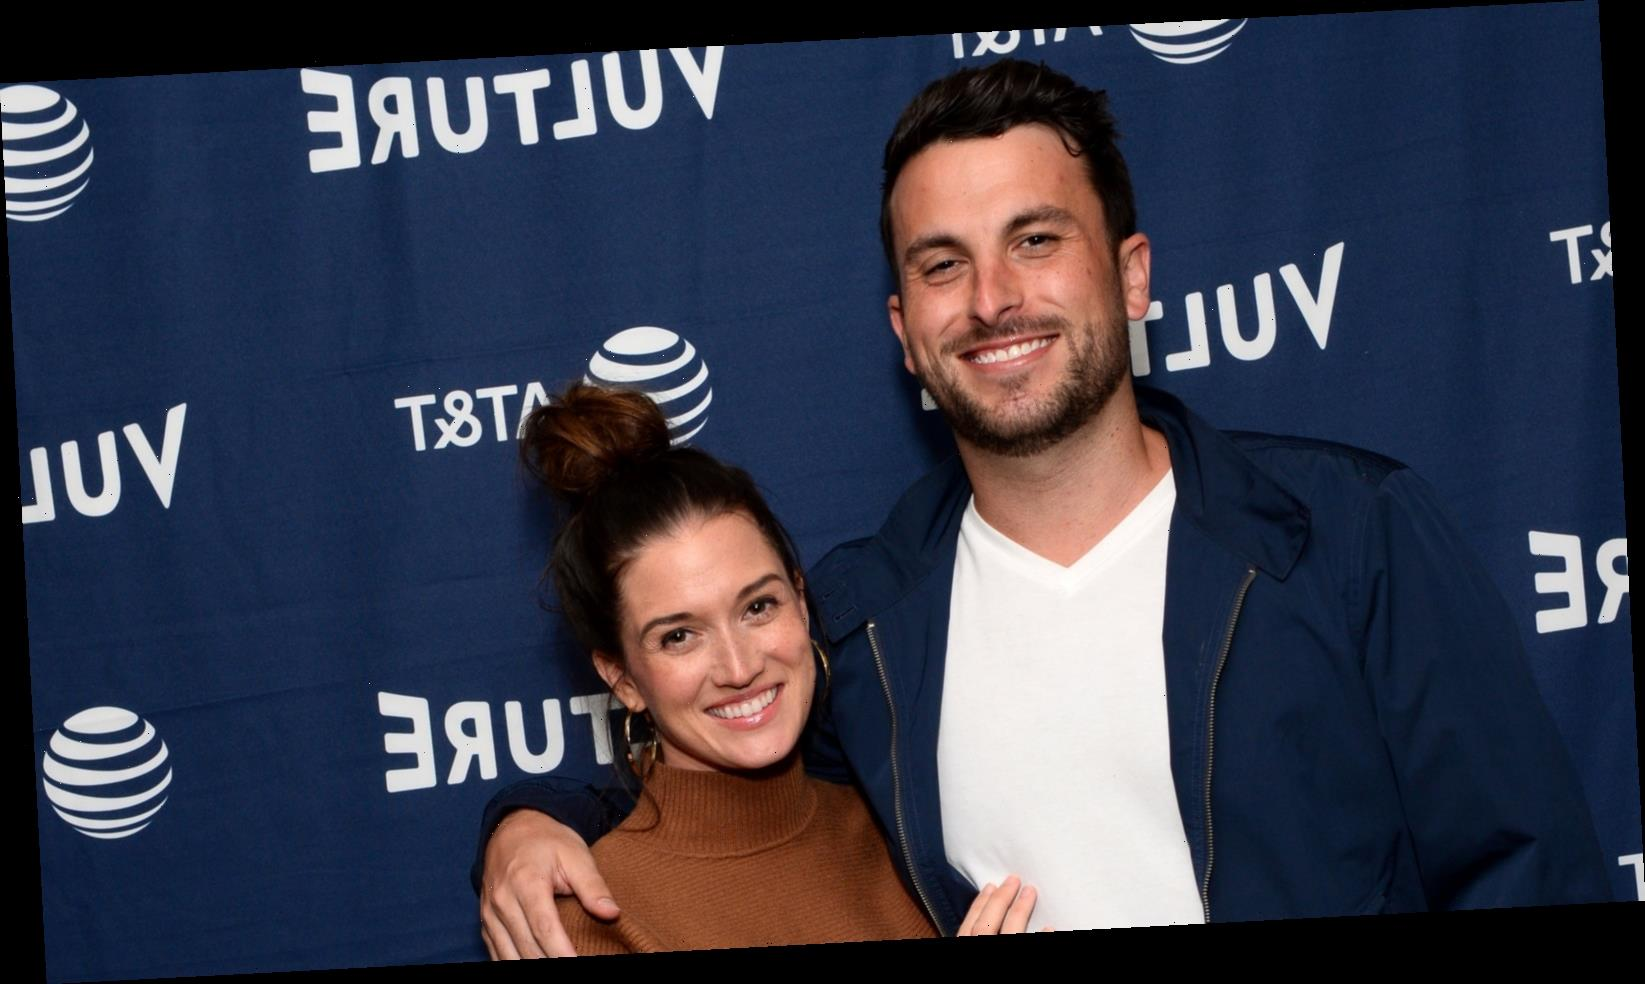 The Bachelor's Jade and Tanner share exciting family news